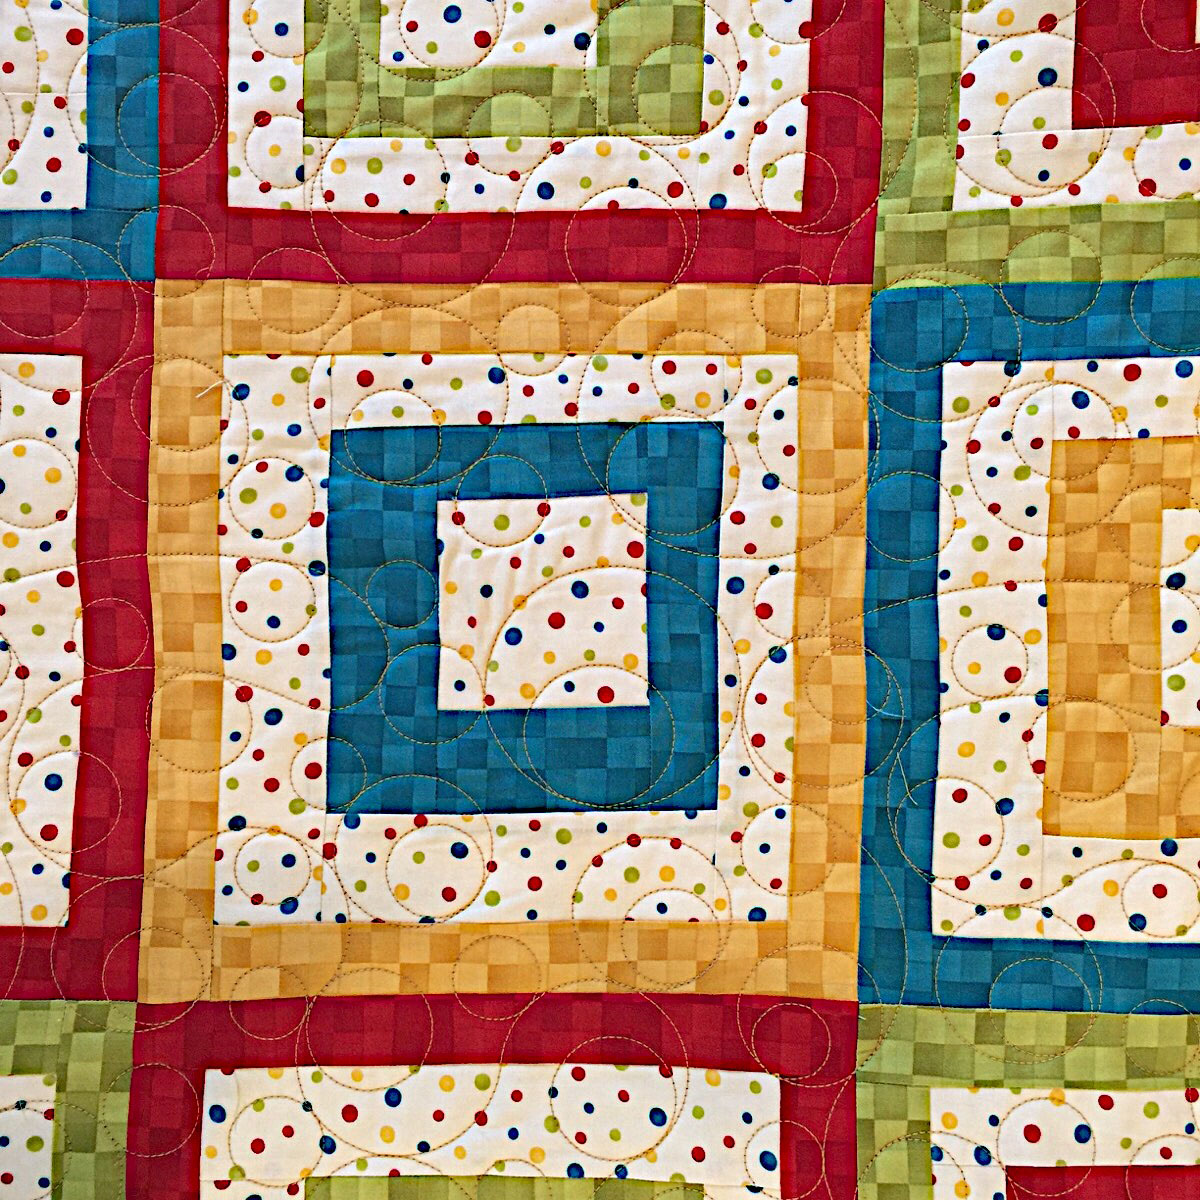 Squares in Squares-Circles Meander Pattern